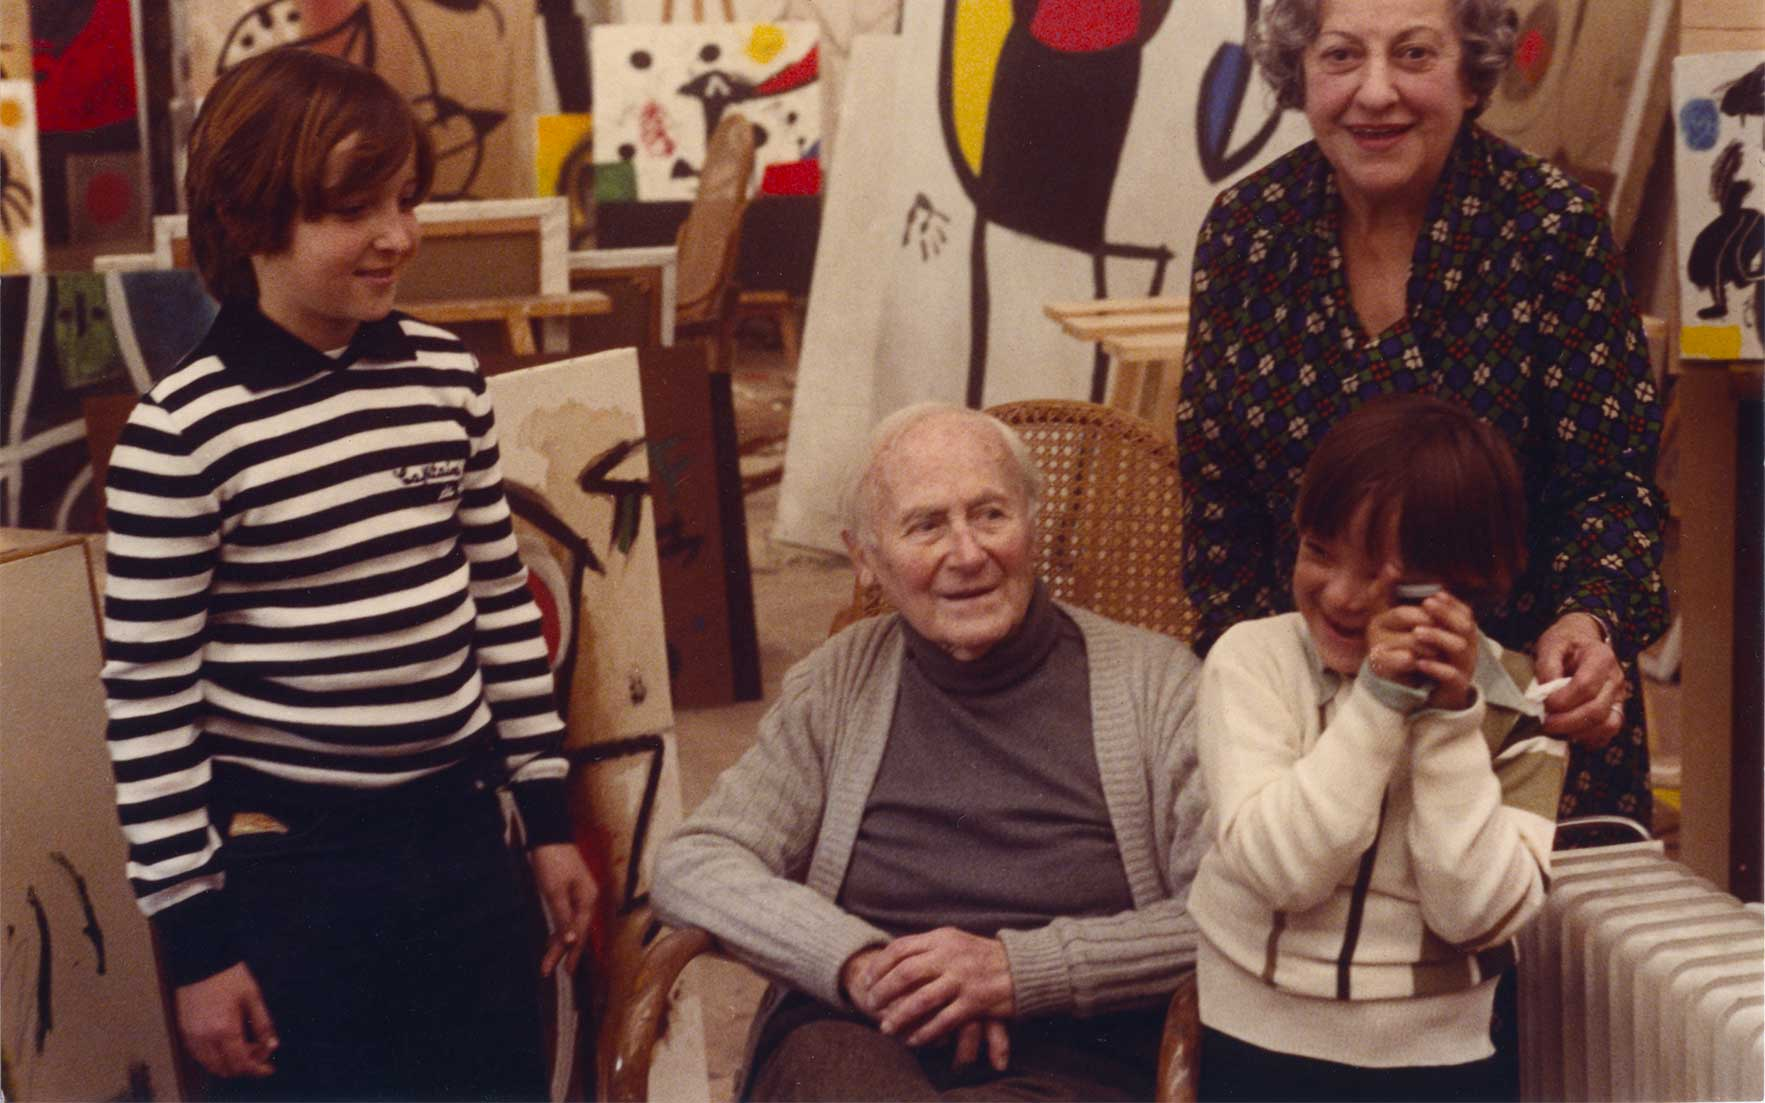 Joan Punyet, Joan Miró, Teo Punyet and Pilar Juncosa, Sert Studio, Palma de Mallorca 1978. Photo Francesc Català-Roca.  © Photographic Archive F. Català-Roca